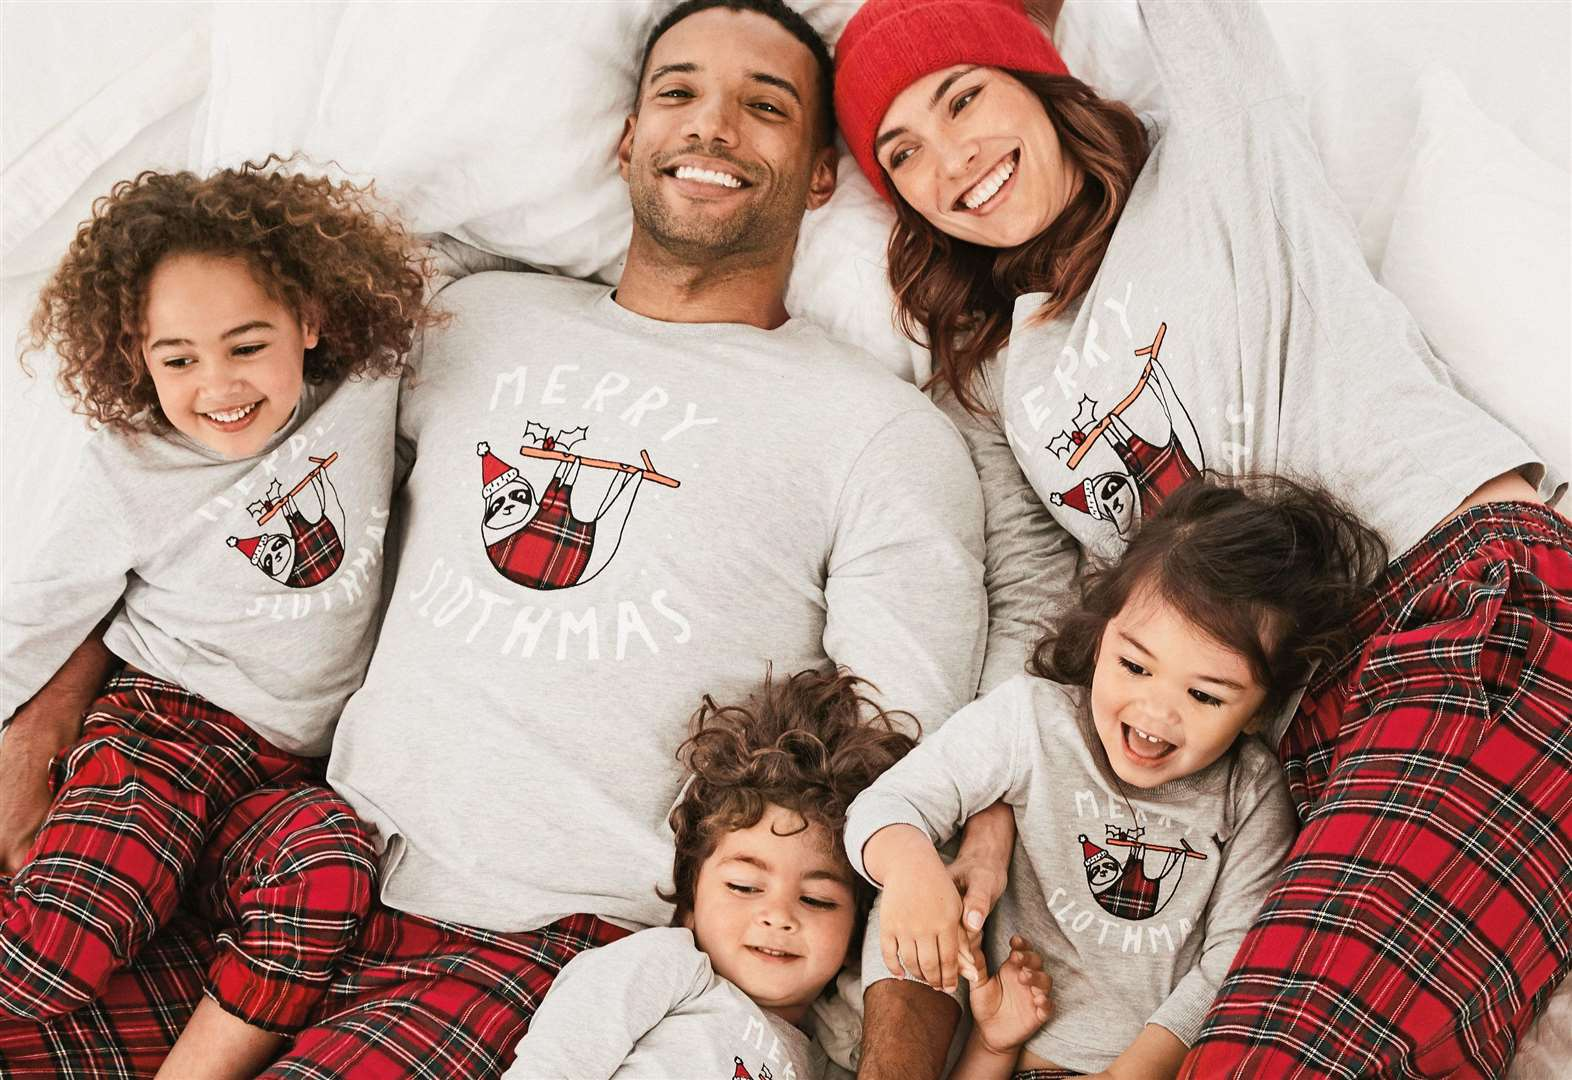 The ultimate PJs for twinning families this Christmas